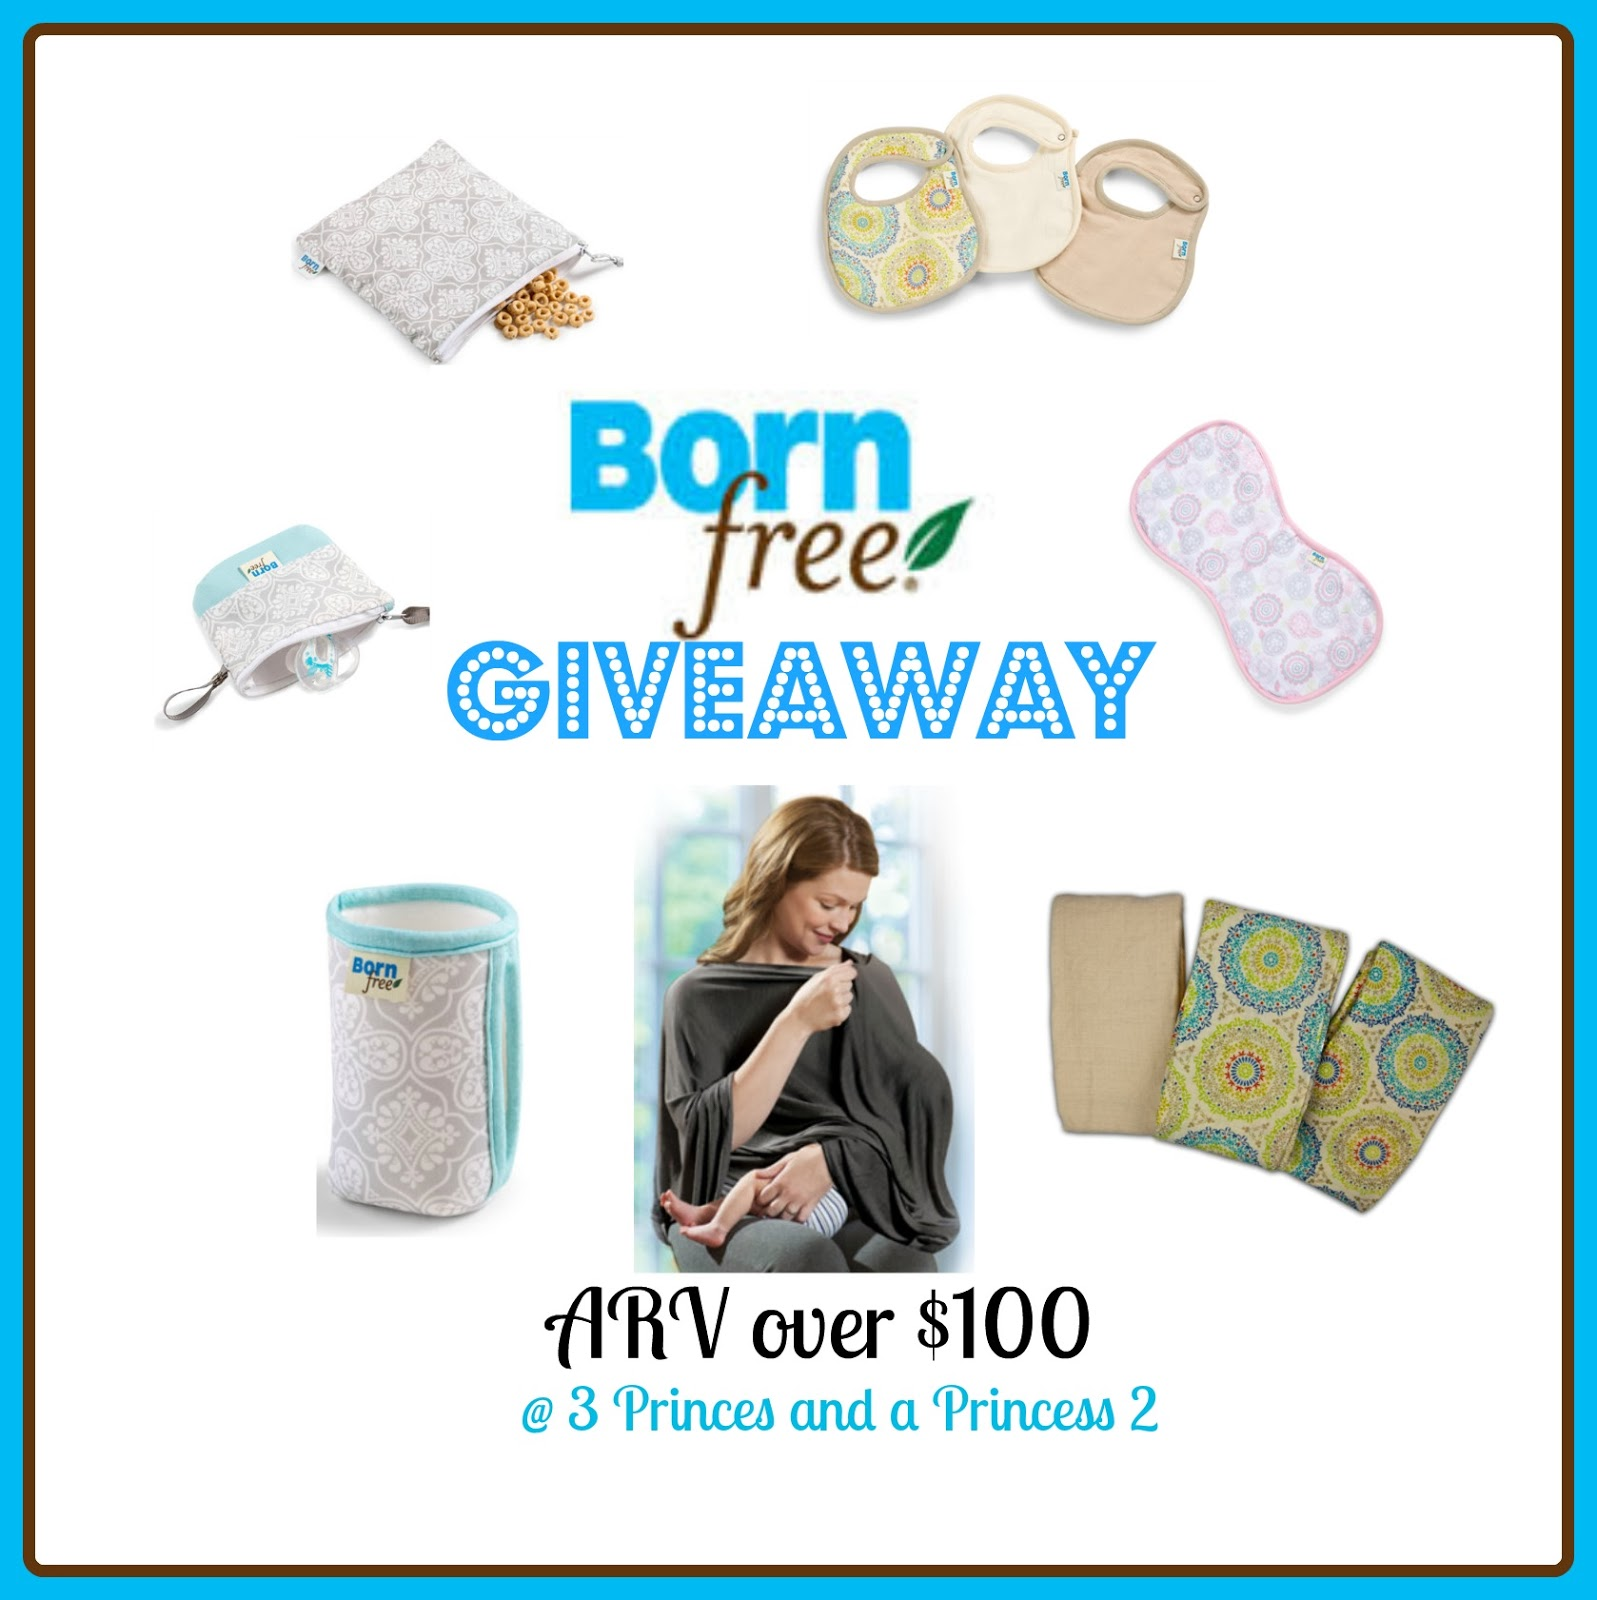 New Born Free Products #Giveaway